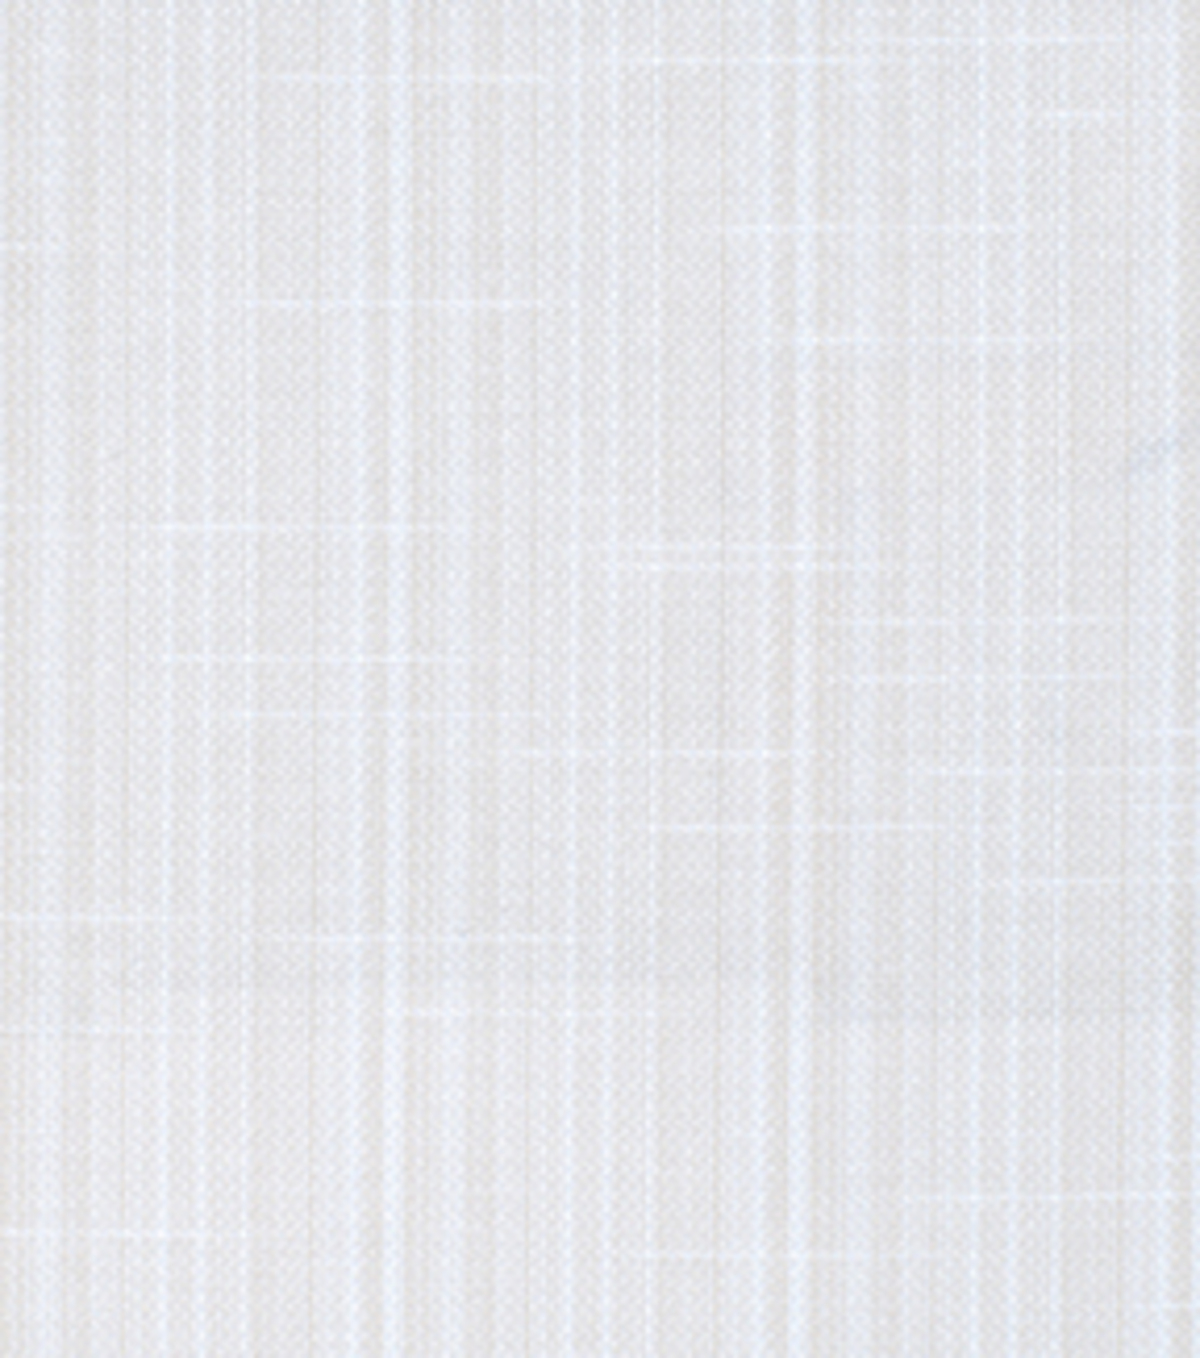 Home Decor 8\u0022x8\u0022 Fabric Swatch-Eaton Square Abner /  Oyster